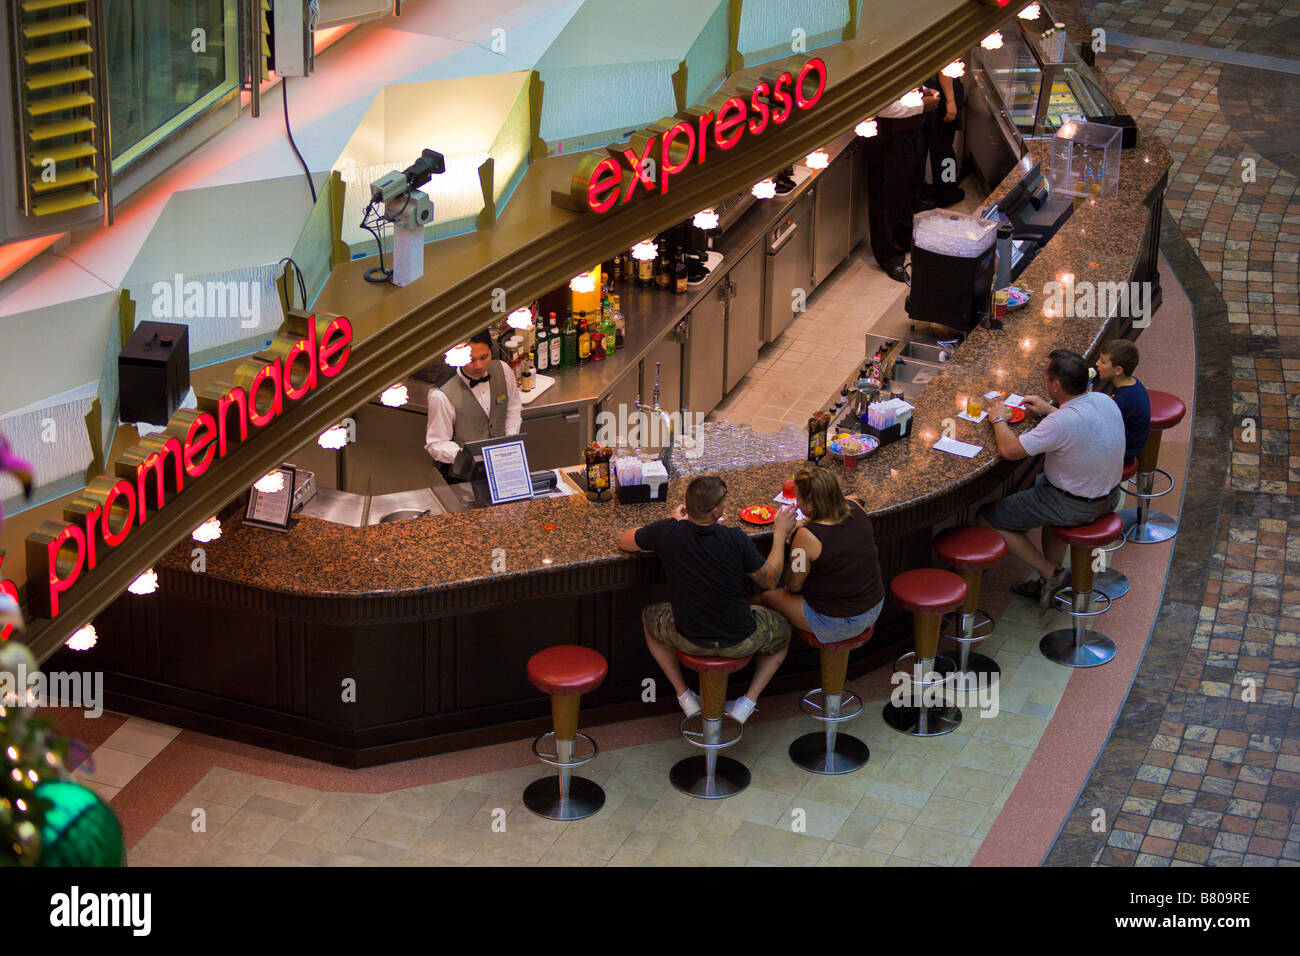 Cruise passengers sit at Expresso bar on Royal Promenade deck of Royal Caribbean Navigator of the Seas cruise ship - Stock Image